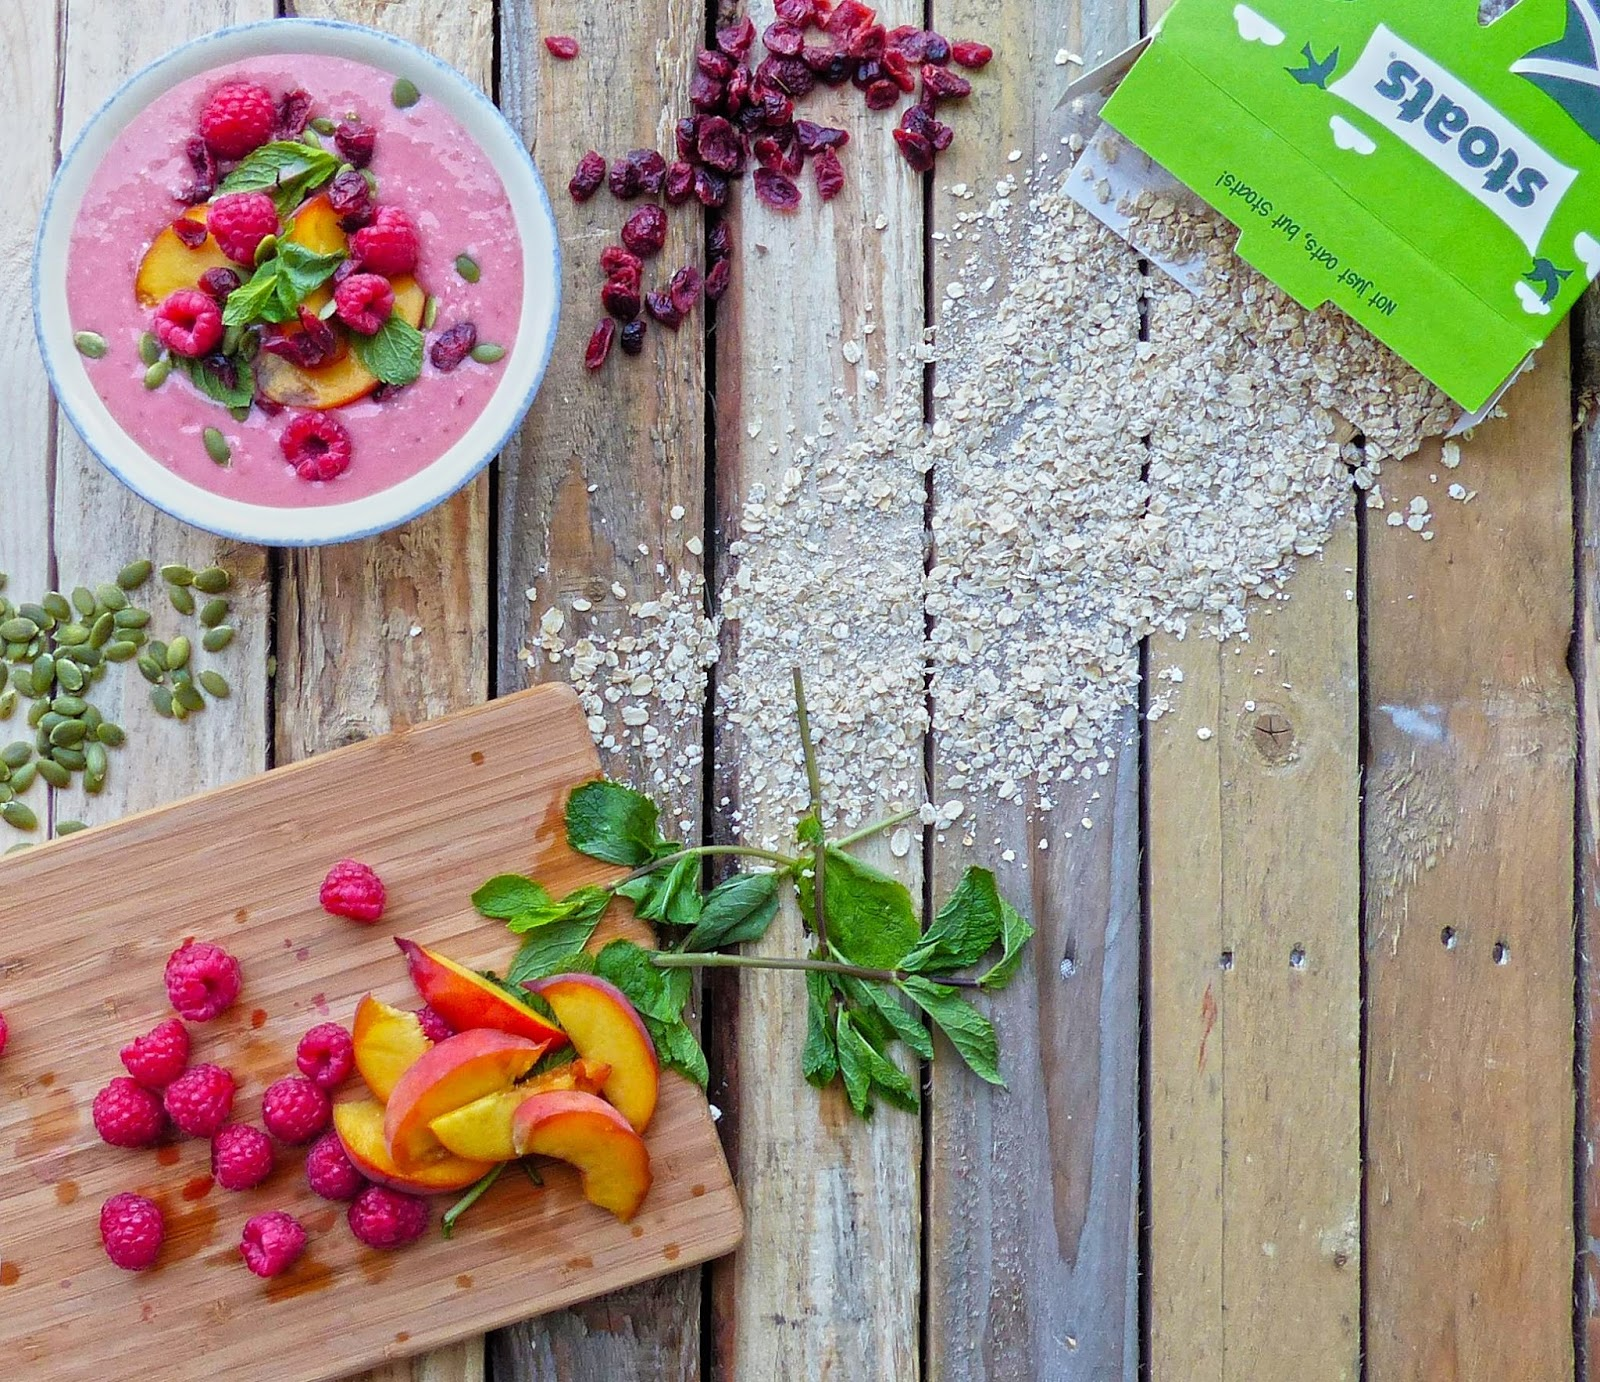 How To Make Oaty Peach And Raspberry Smoothie Bowl